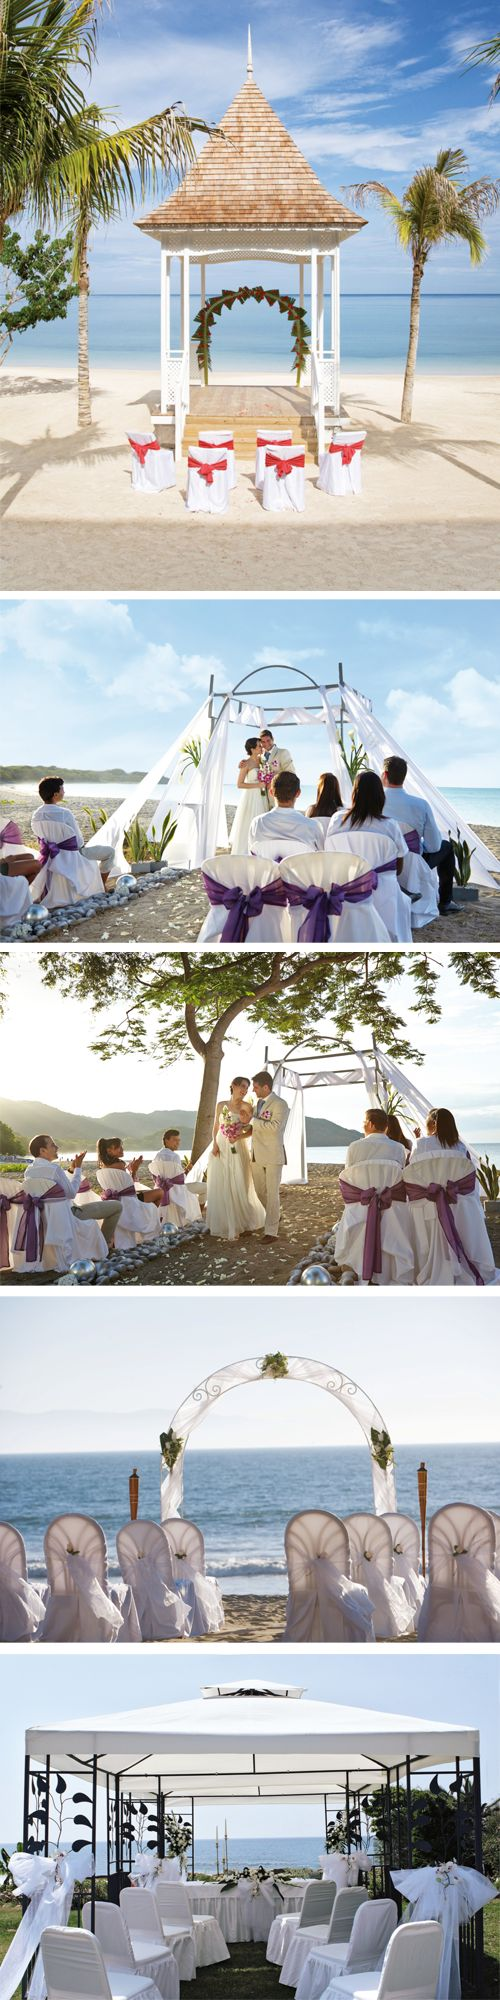 Wwedding in paradise - Wedding Altar decoration idea - Beach Wedding - Wedding destination - RIU Weddings